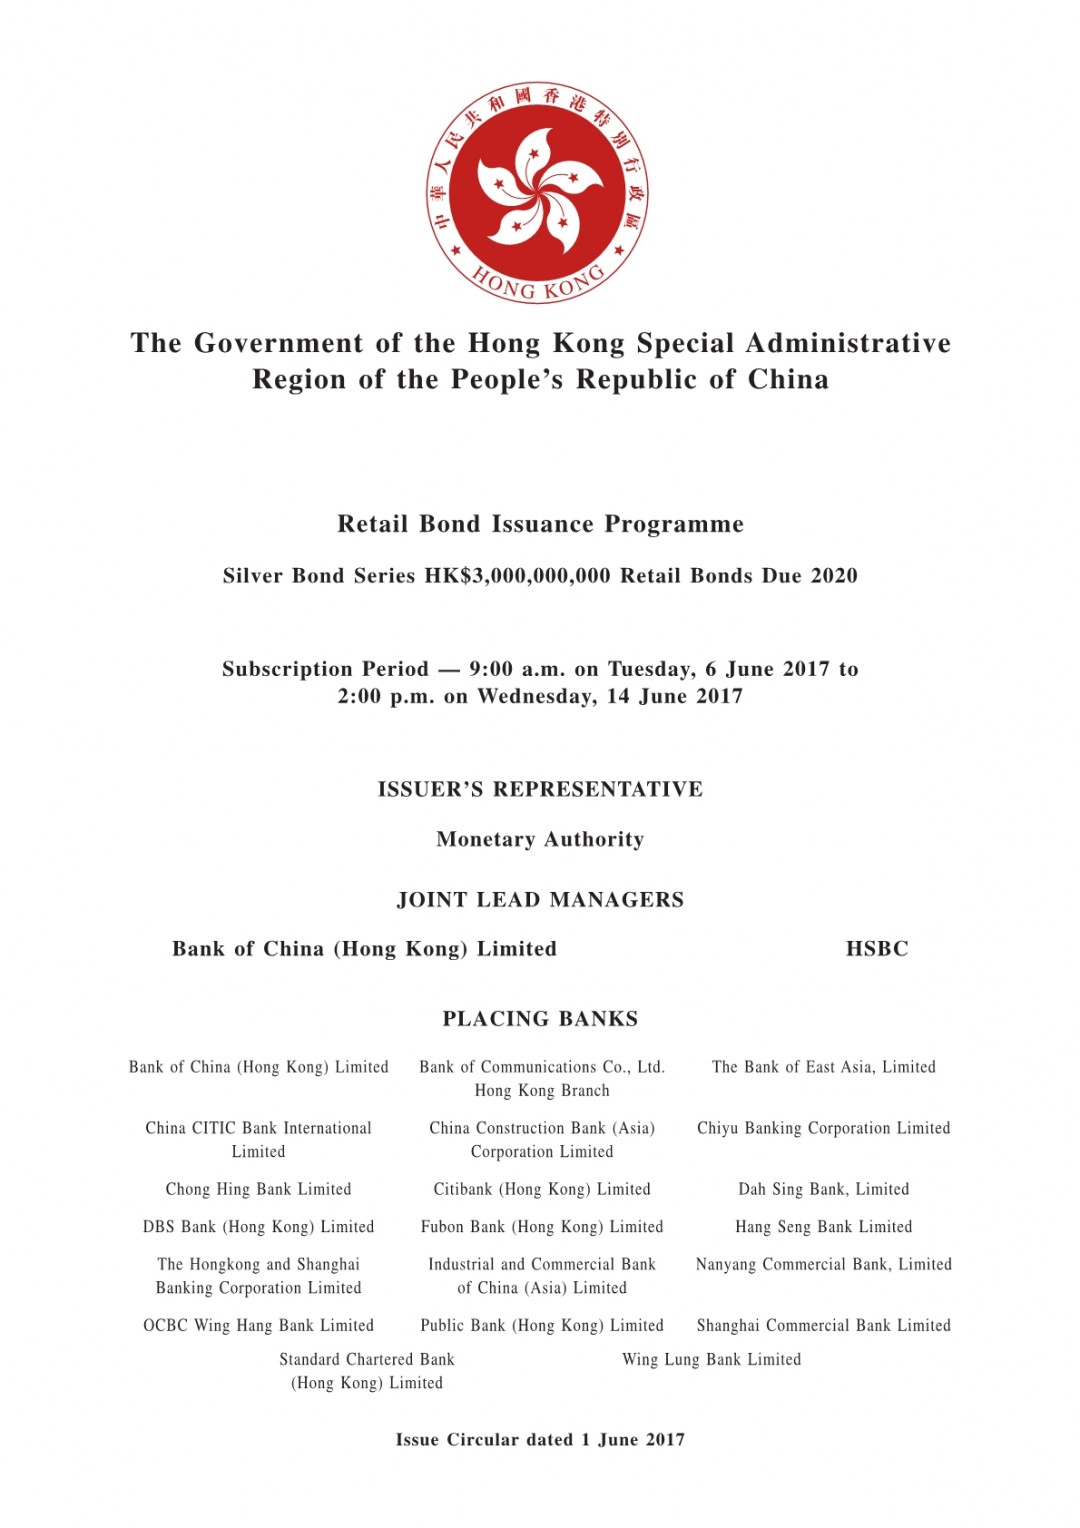 The Government of the Hong Kong Special Administrative Region of the People's Republic of China – Issue Circular